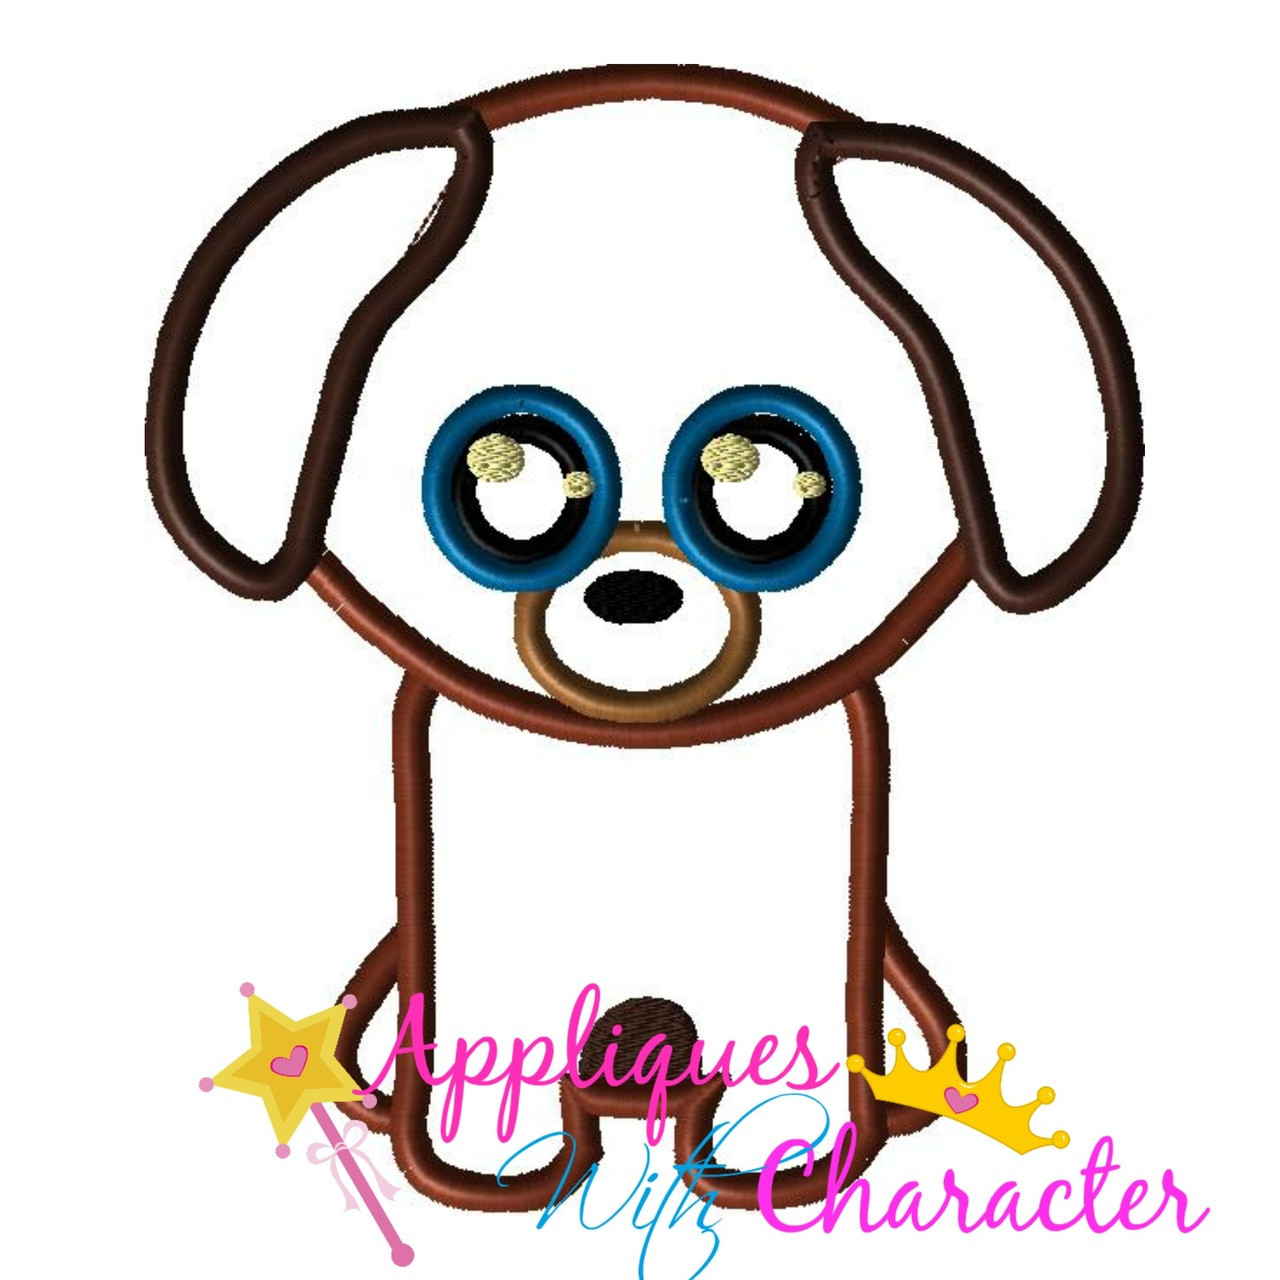 aebe73f3040 Beanie Boo Dog Applique Design by Appliques With Character